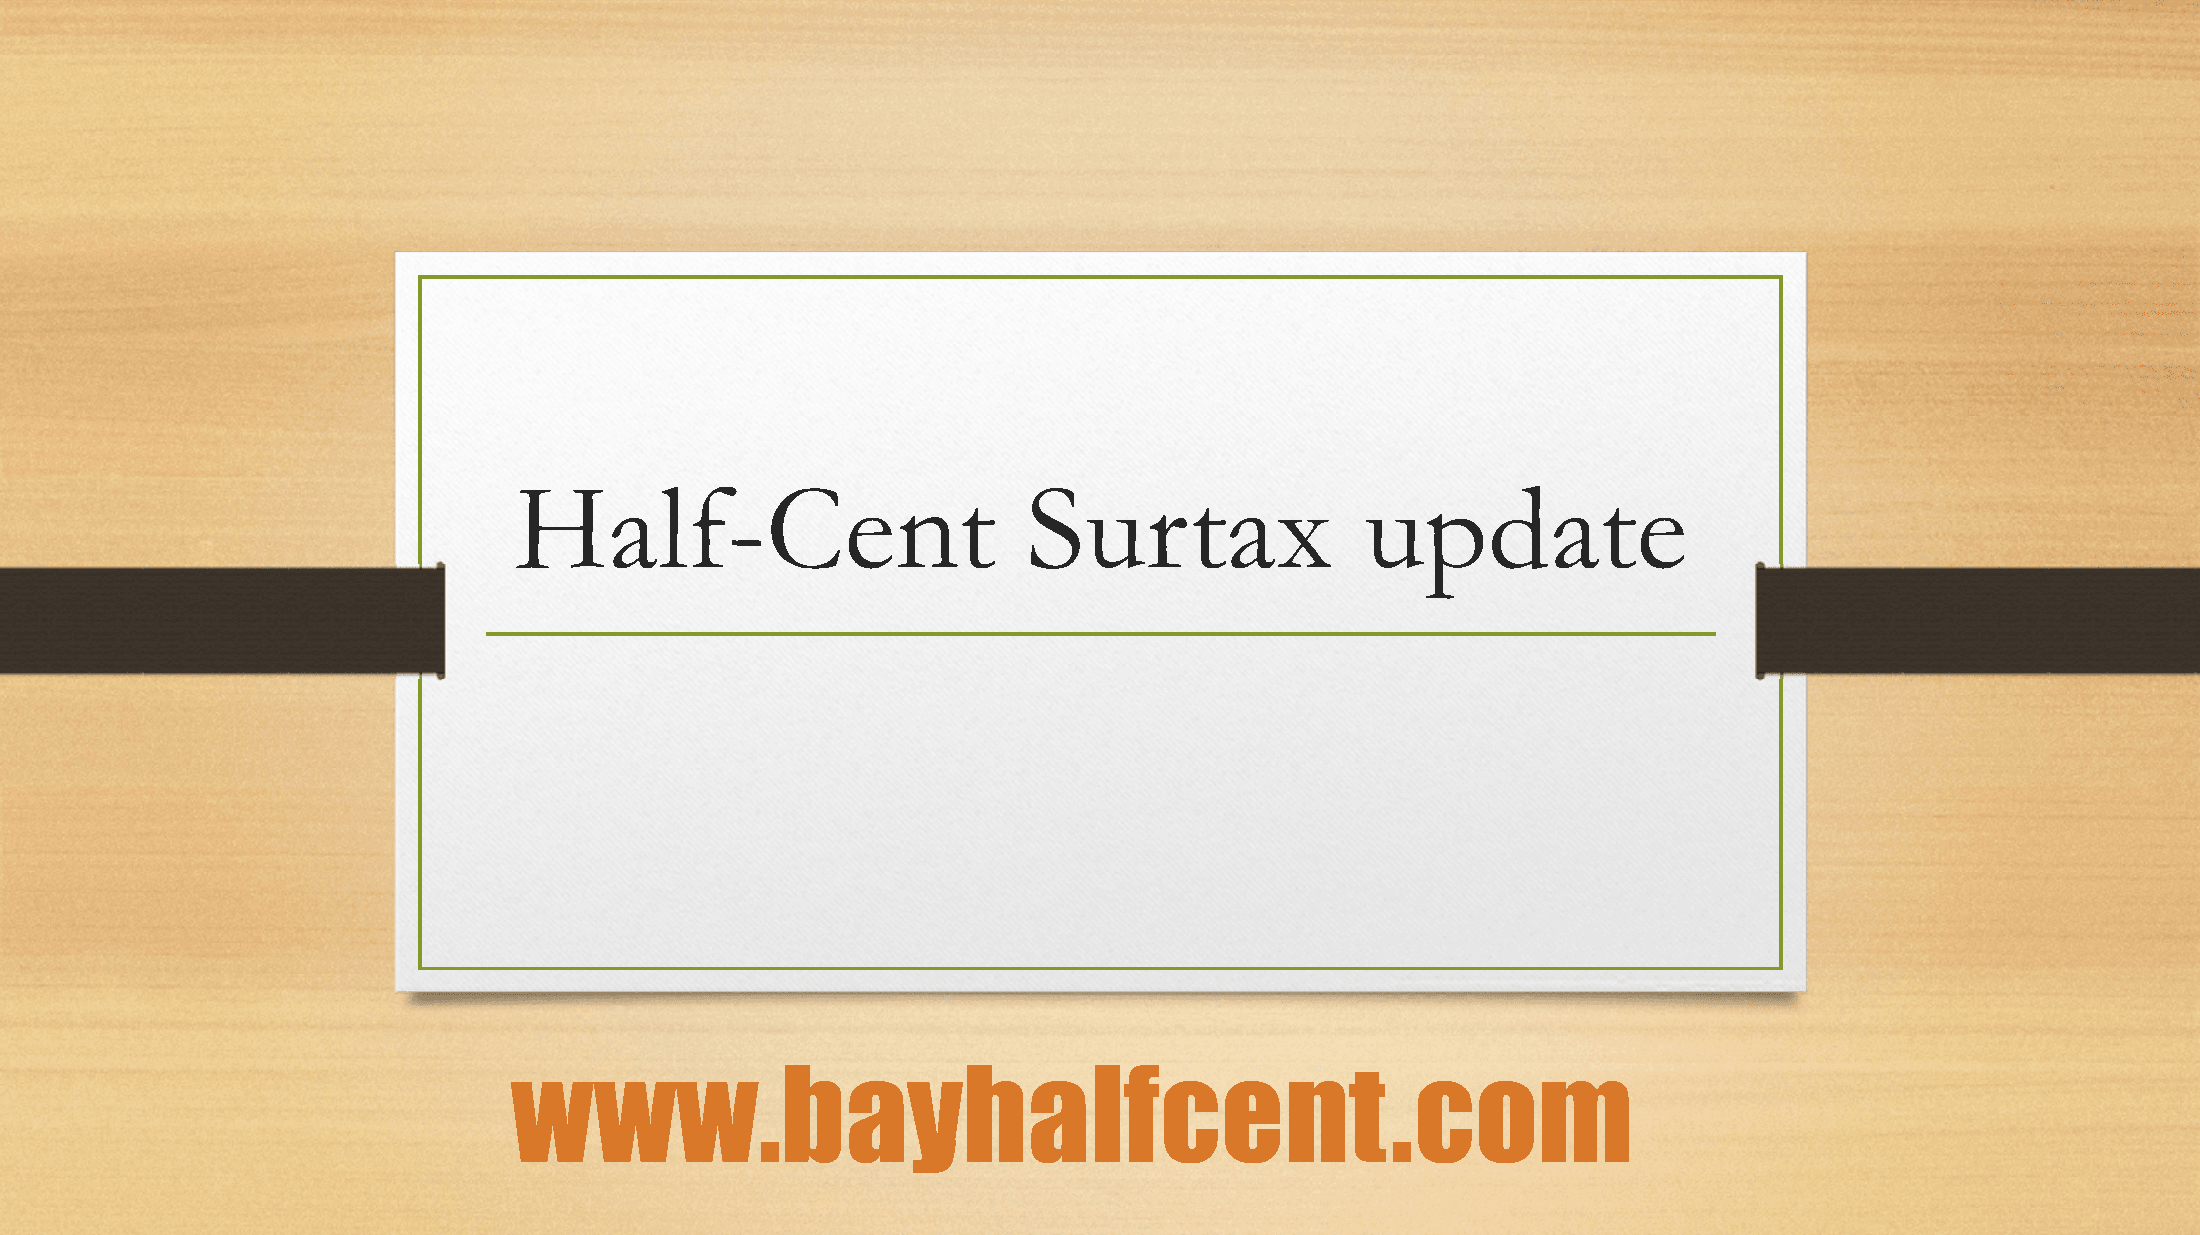 Half Cent update for website_1